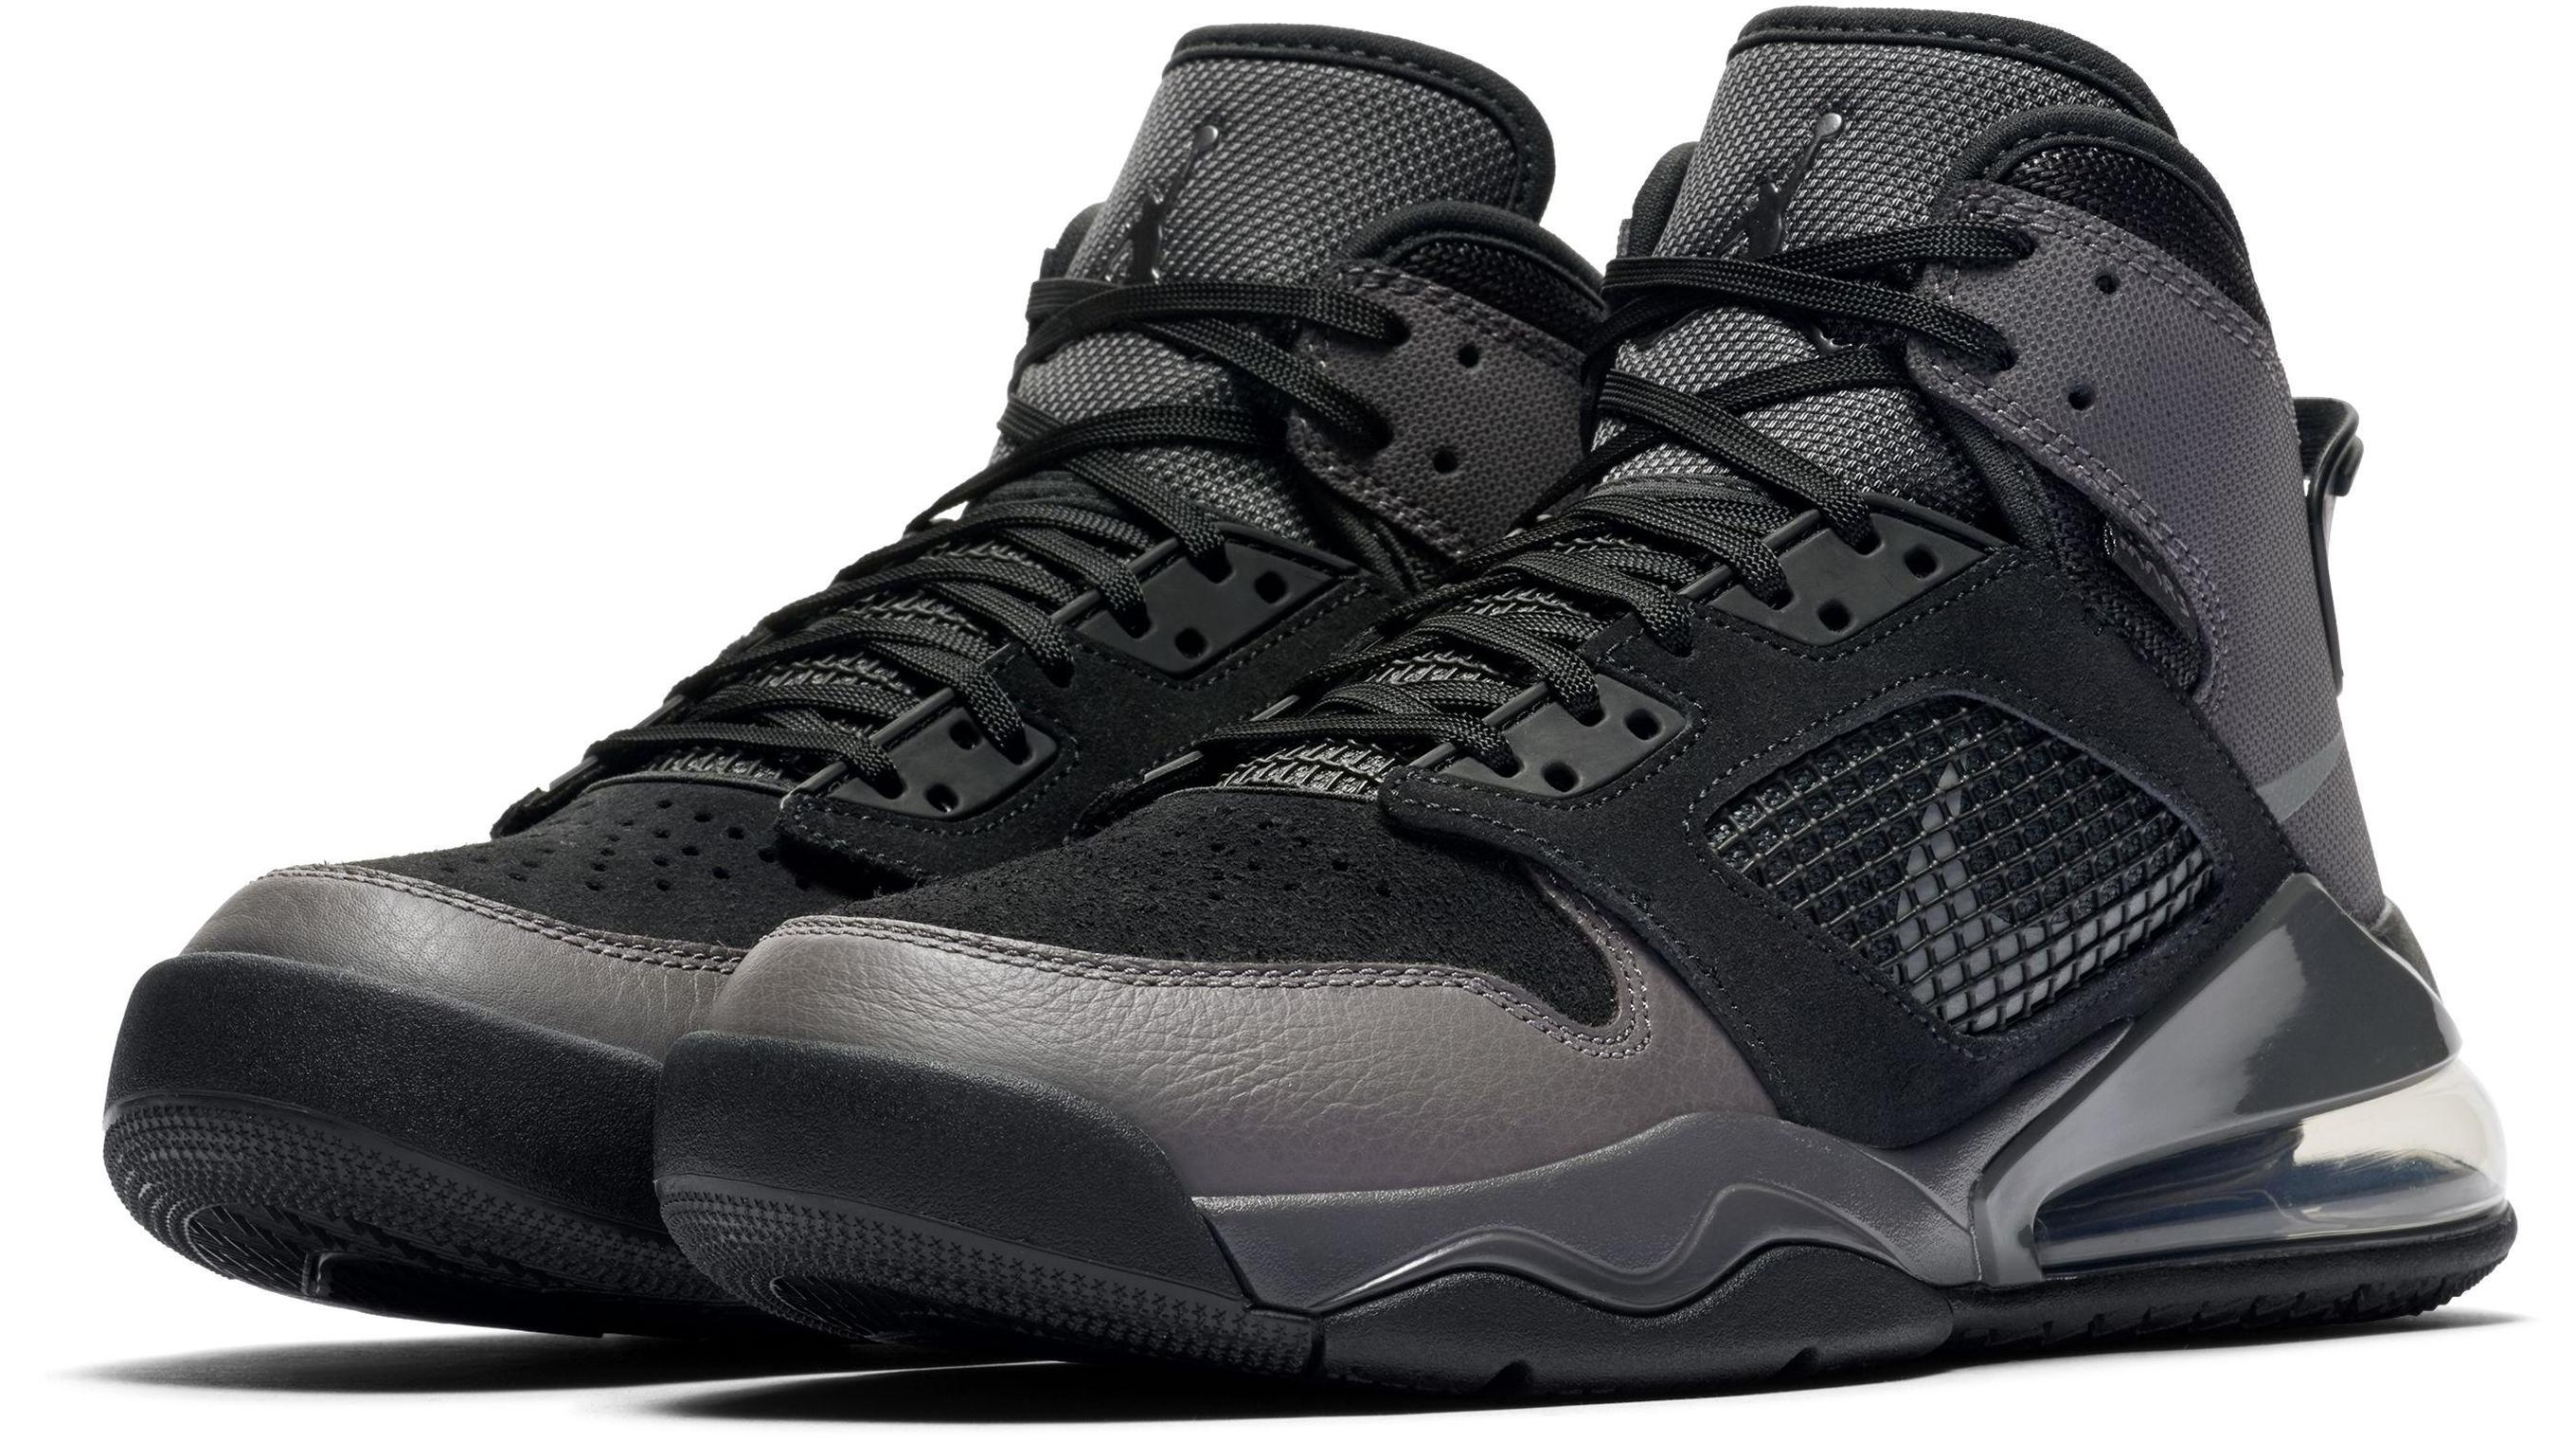 Jordan Mars 270 Thunder Grey/Dark Smoke Grey/Iron Grey/Smoke Grey